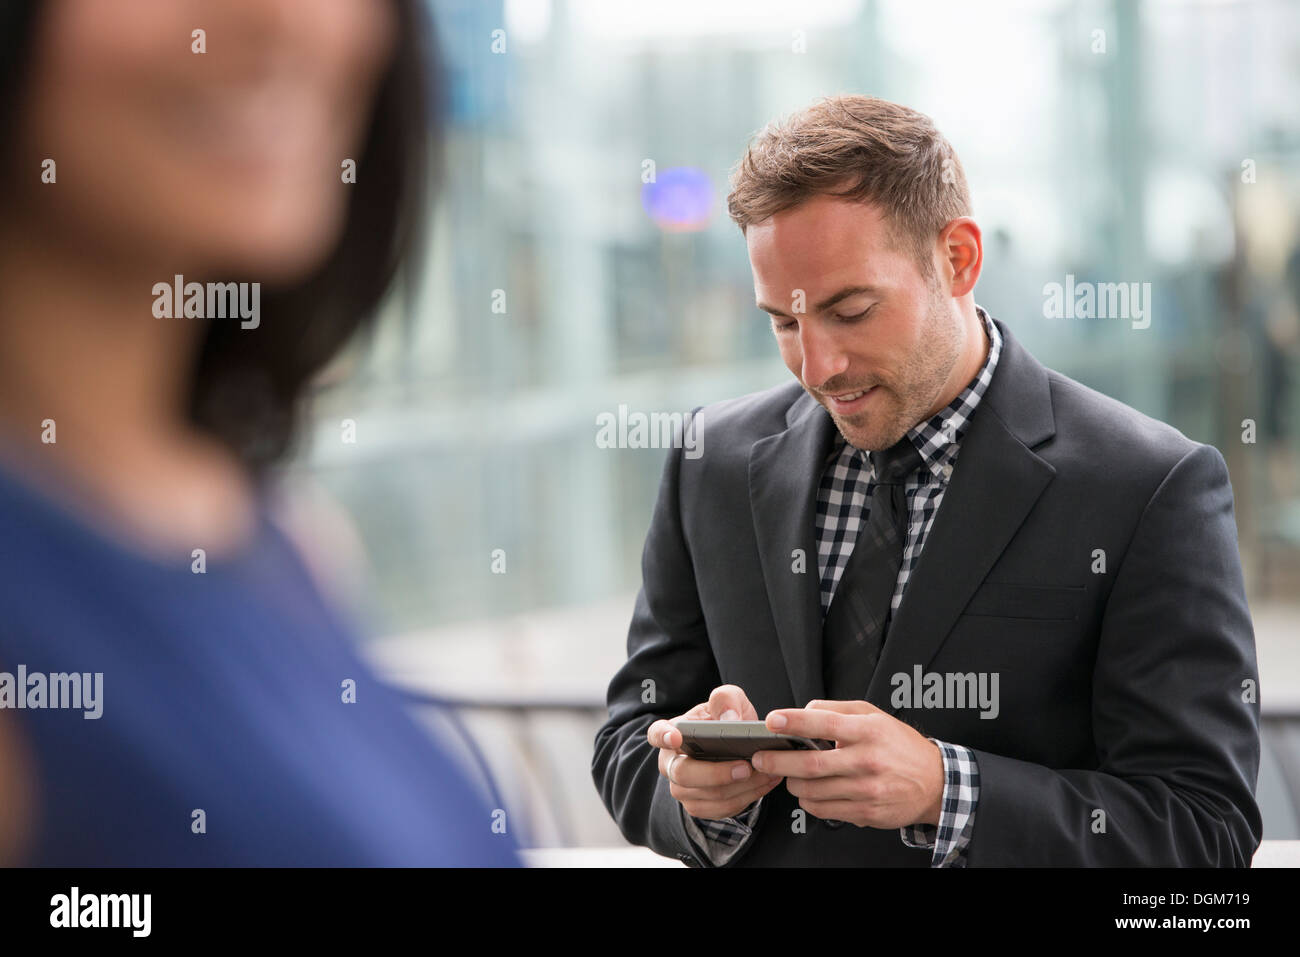 A man in a suit checking his phone. A woman in the foreground. - Stock Image